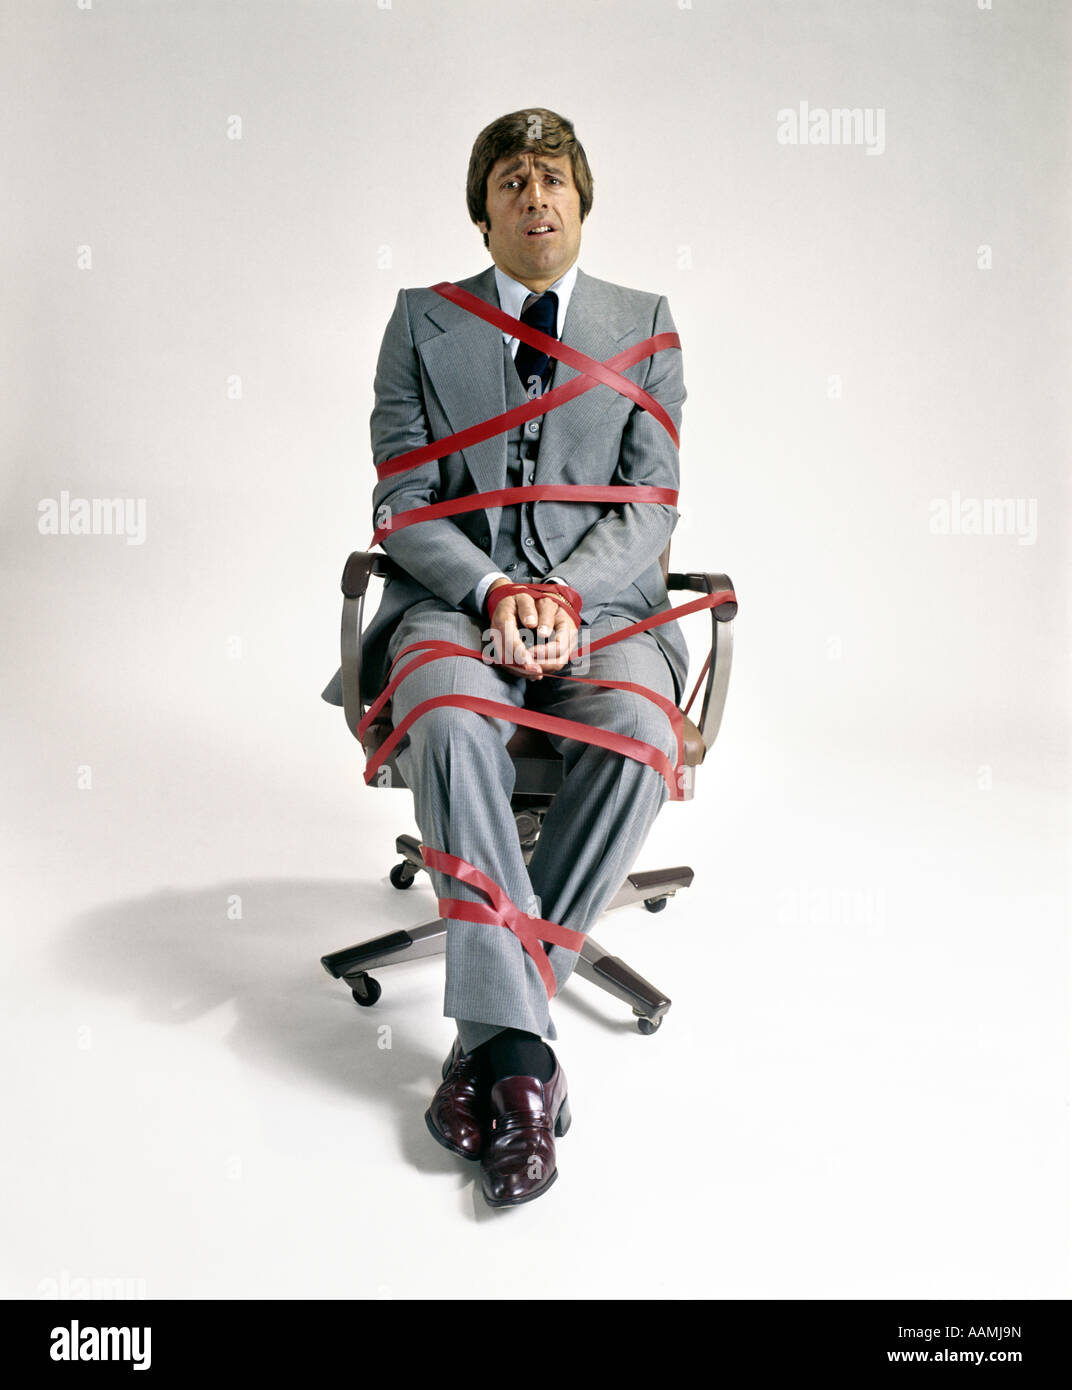 1970s BUSINESS MAN TIED UP IN RED TAPE SITTING IN OFFICE DESK CHAIR SYMBOLIC - Stock Image